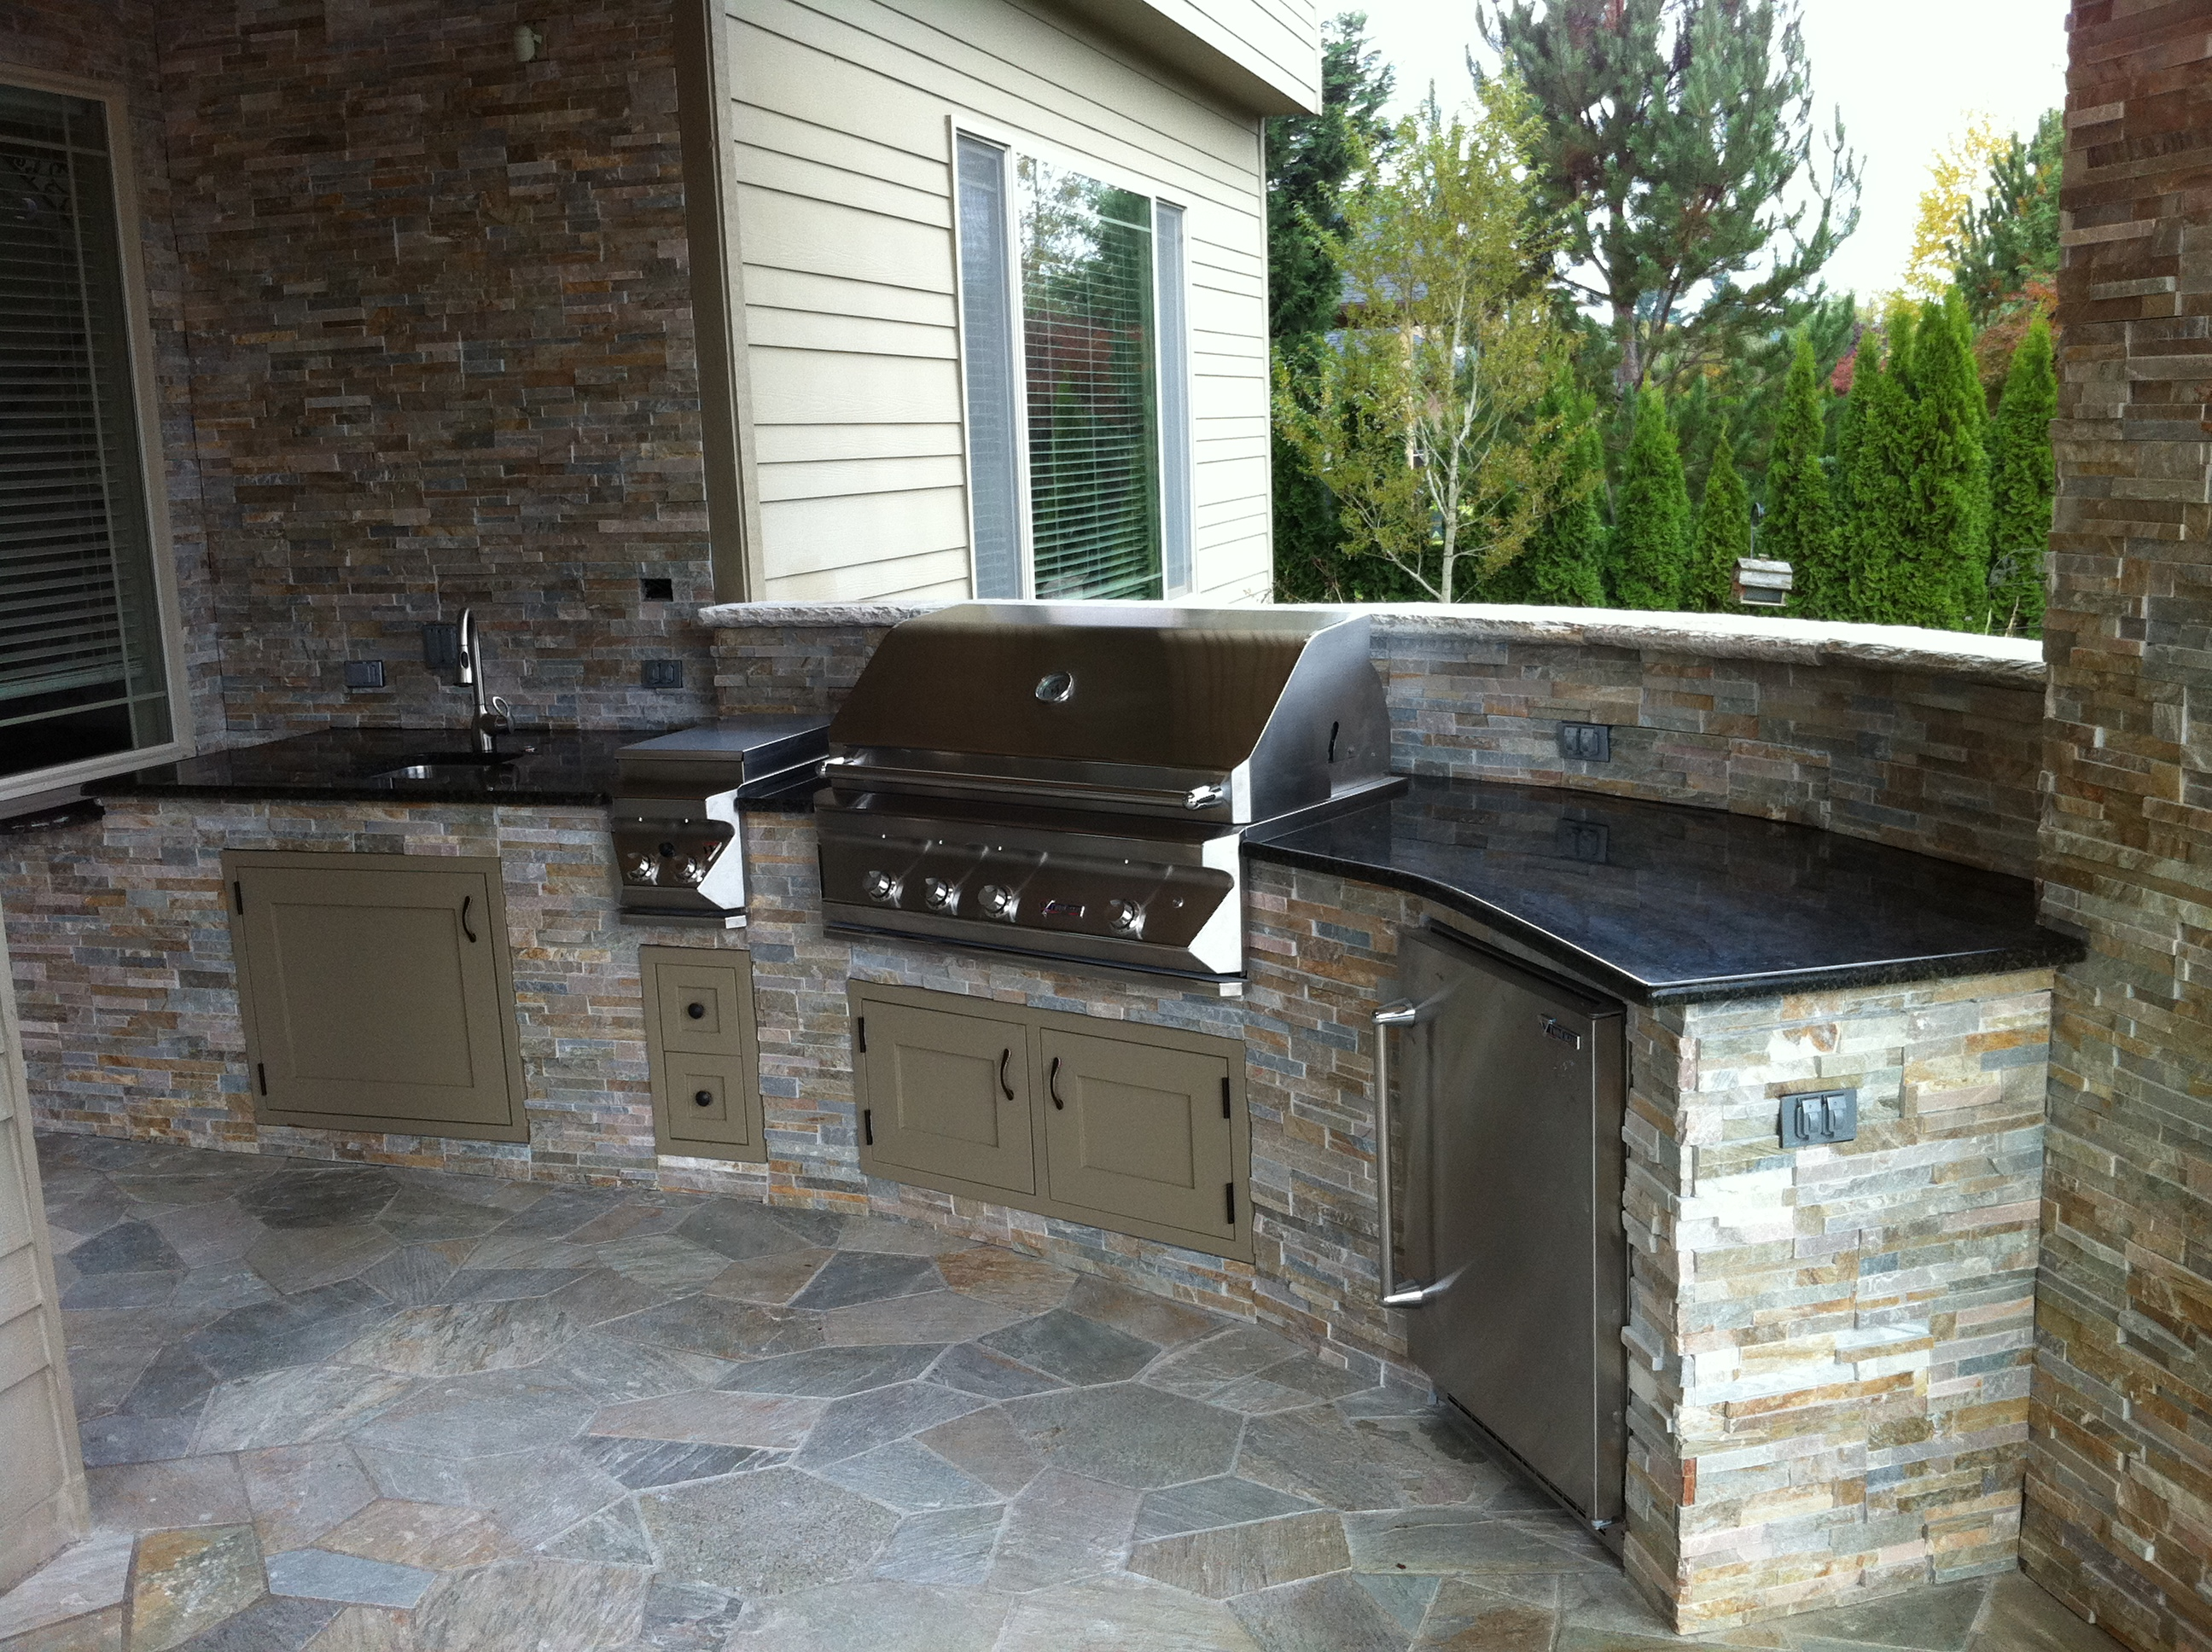 Modern outdoor kitchen indy construction llc for Outdoor kitchen contractors